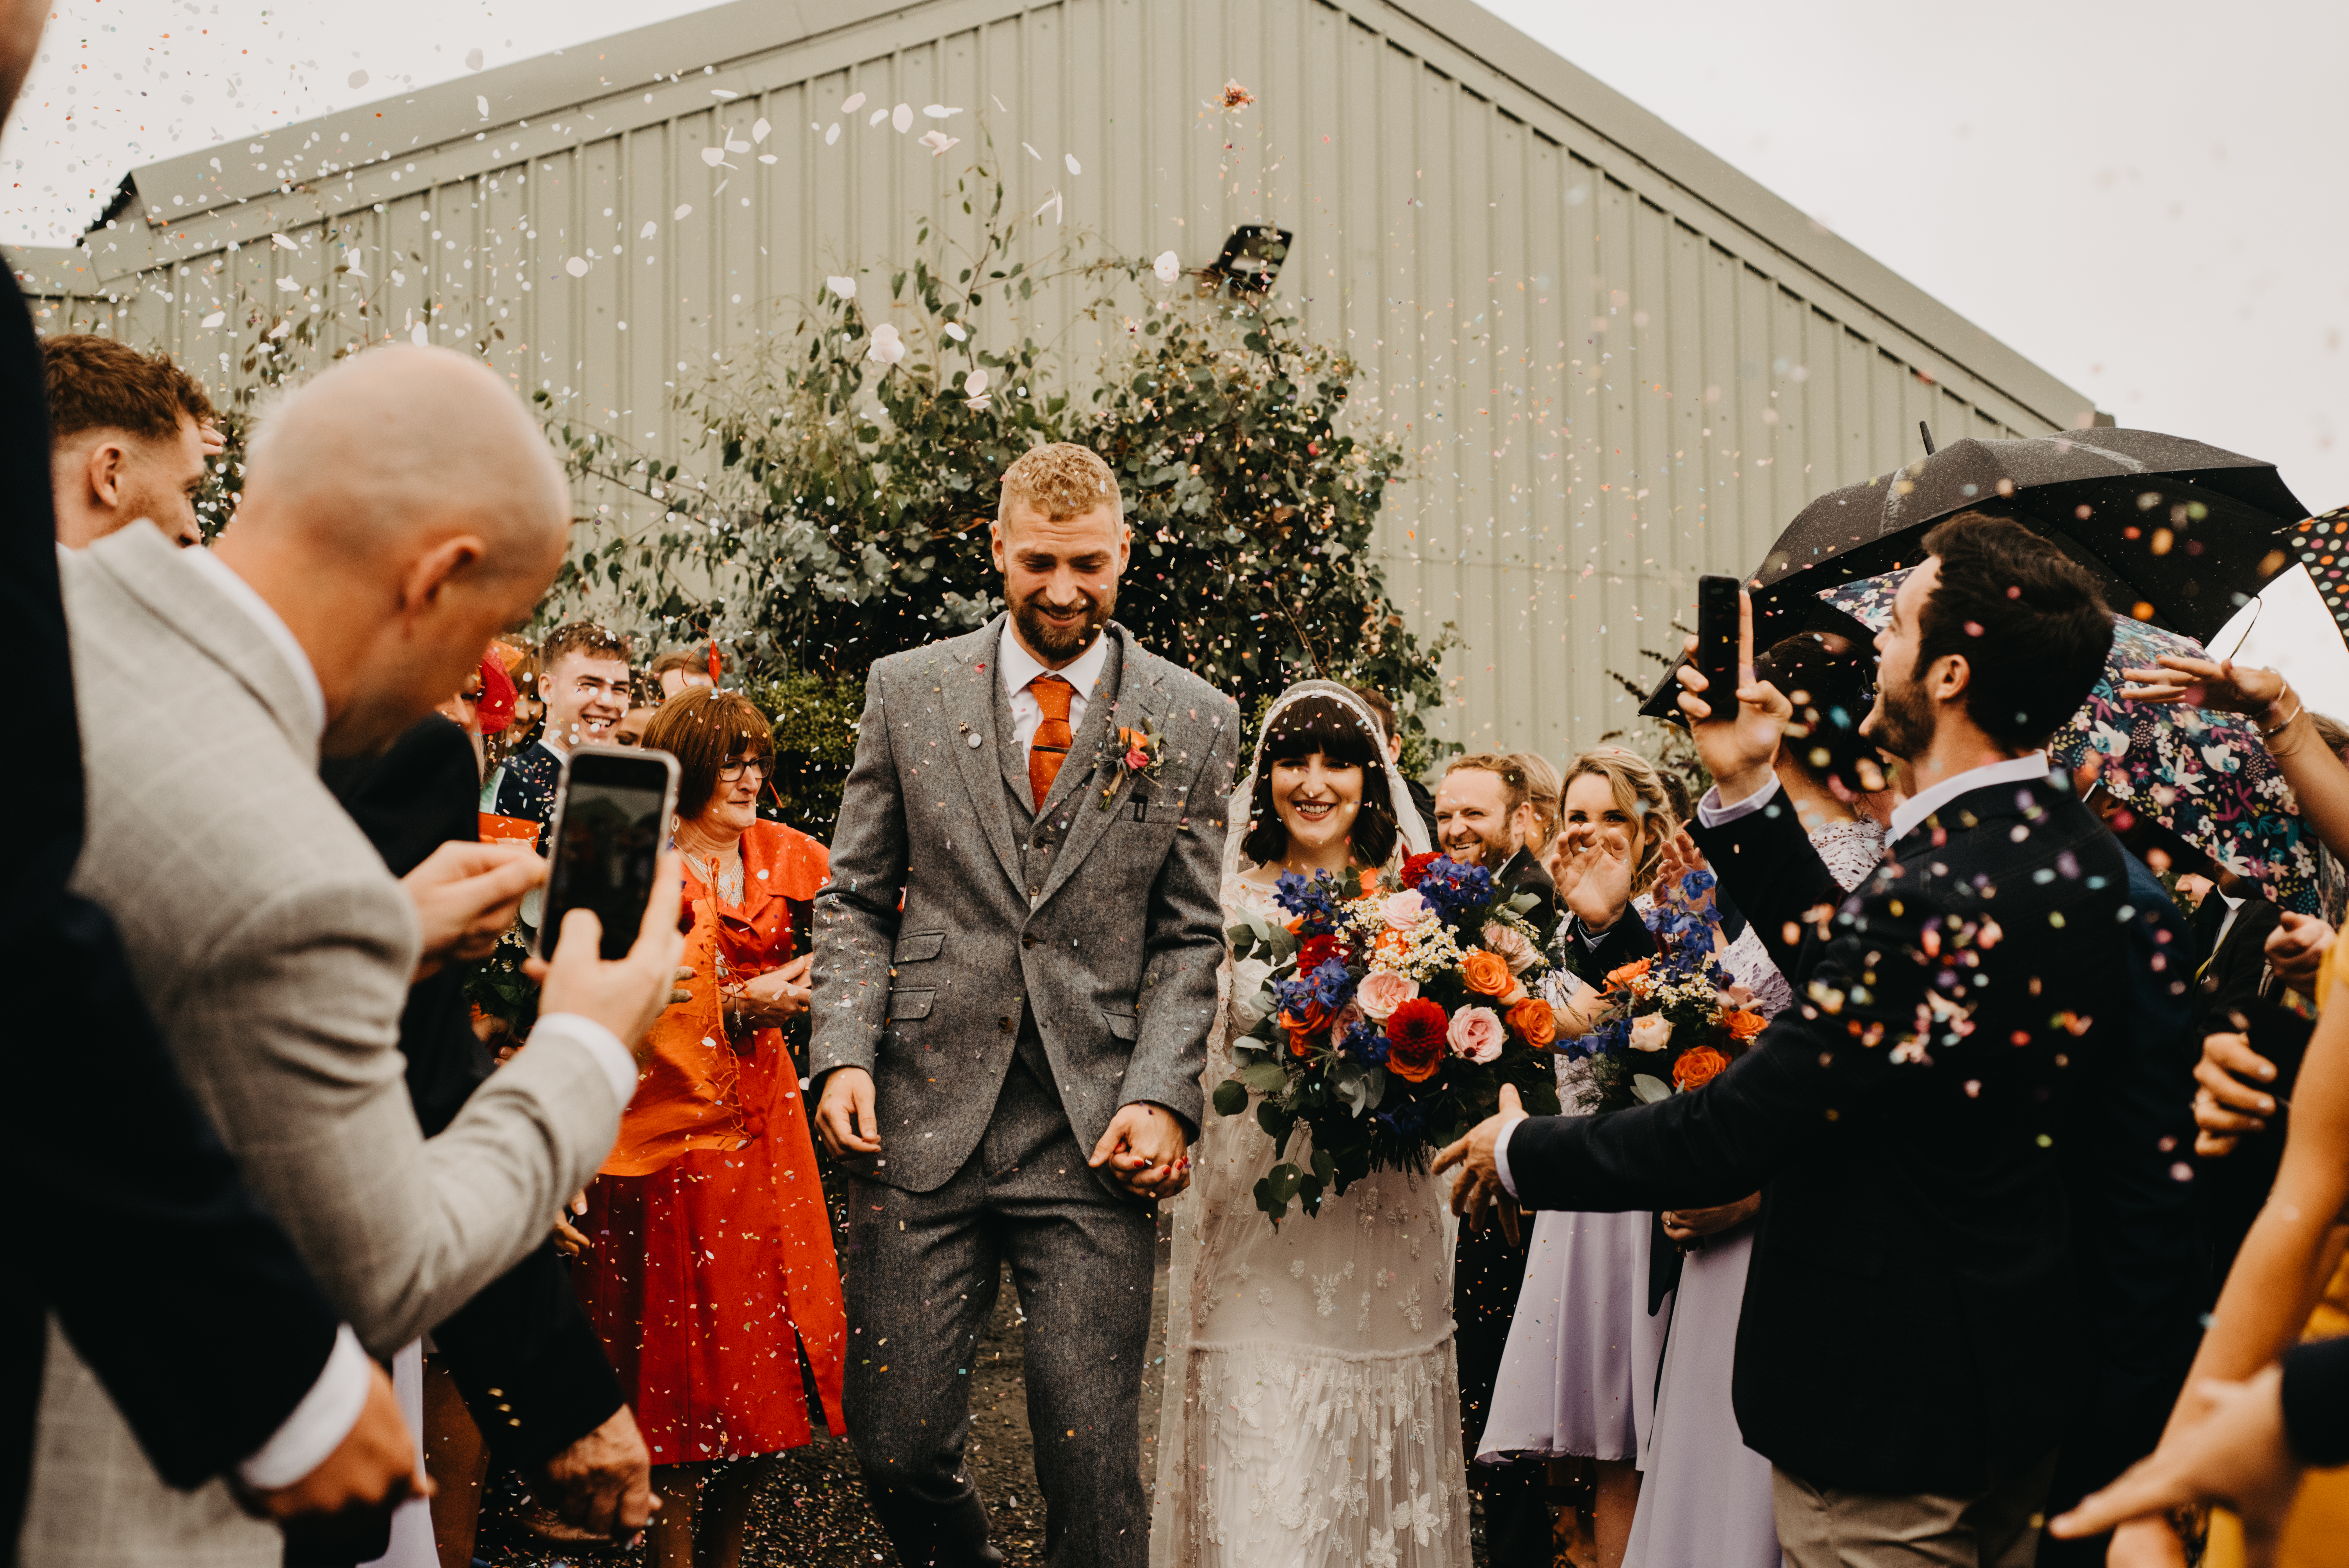 Bride and groom walks while guests throws confetti over them